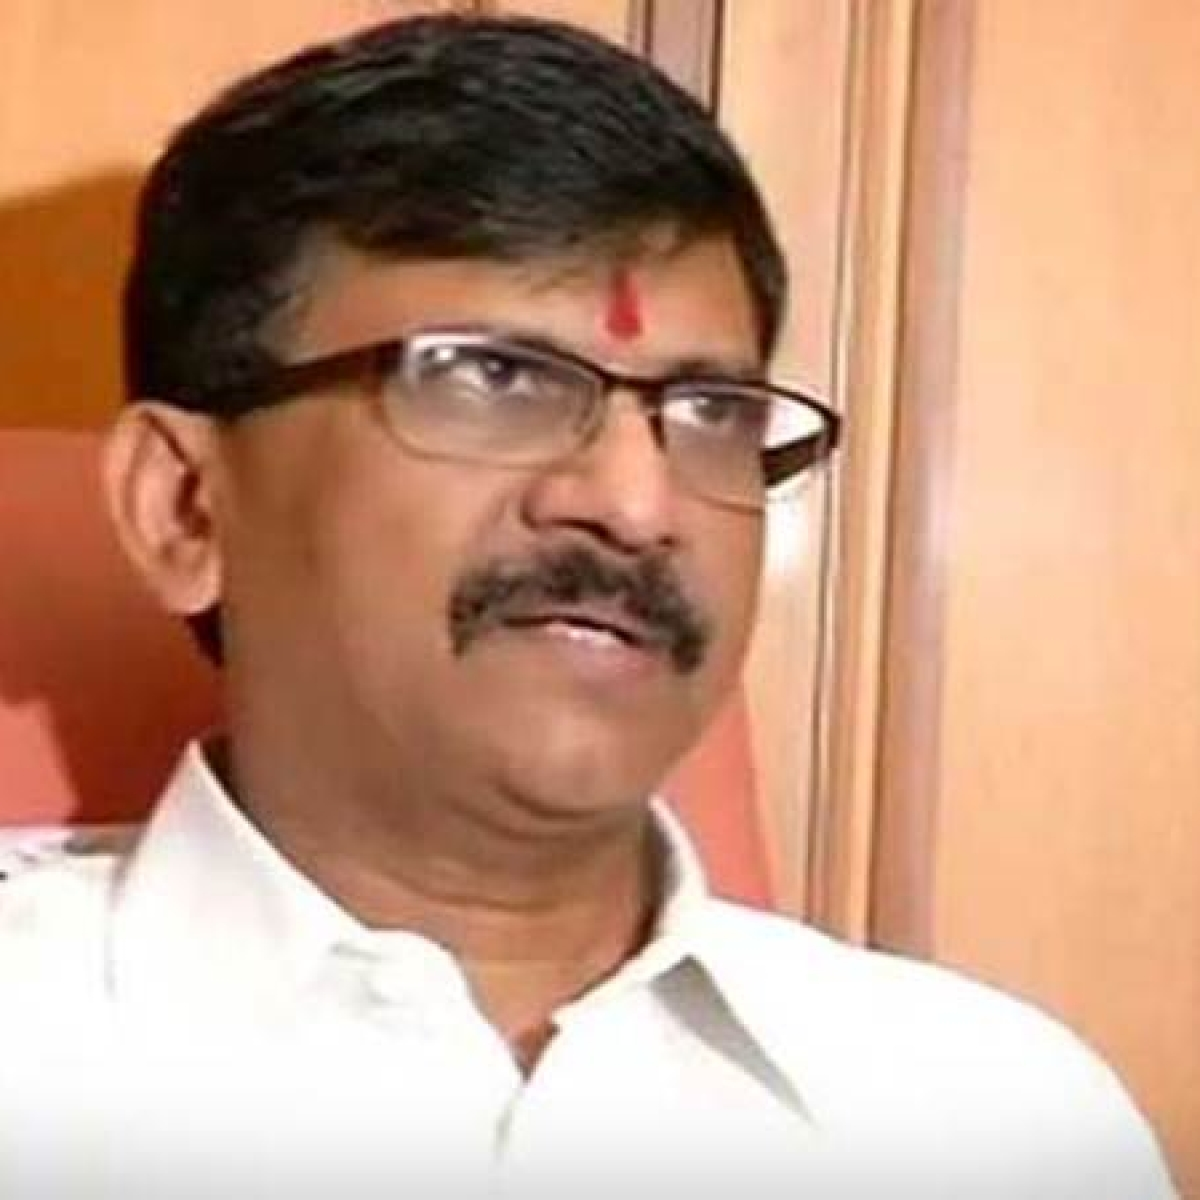 Political leaders of Kashmir have over enjoyed Article 35-A, says Shiv Sena MP Sanjay Raut